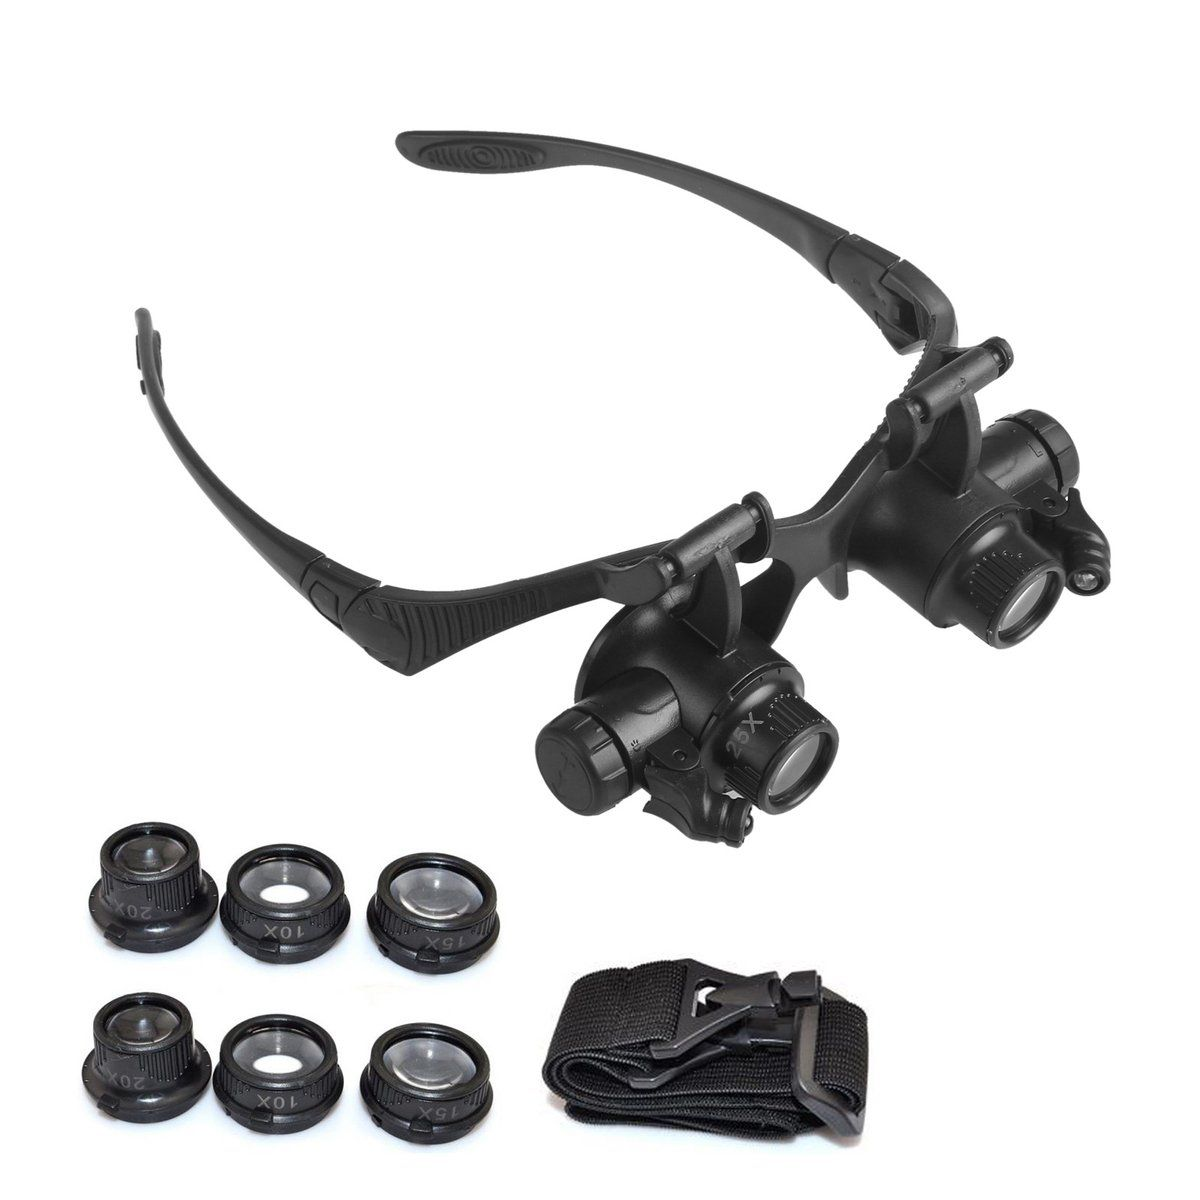 ddcab3c77c27 Magnifying Glasses Magnifier Eye Loupe 10X 15X 20X 25X Jewelry Watch Repair  Magnifying Eyewear With 2LED Lights Loupe Microscope